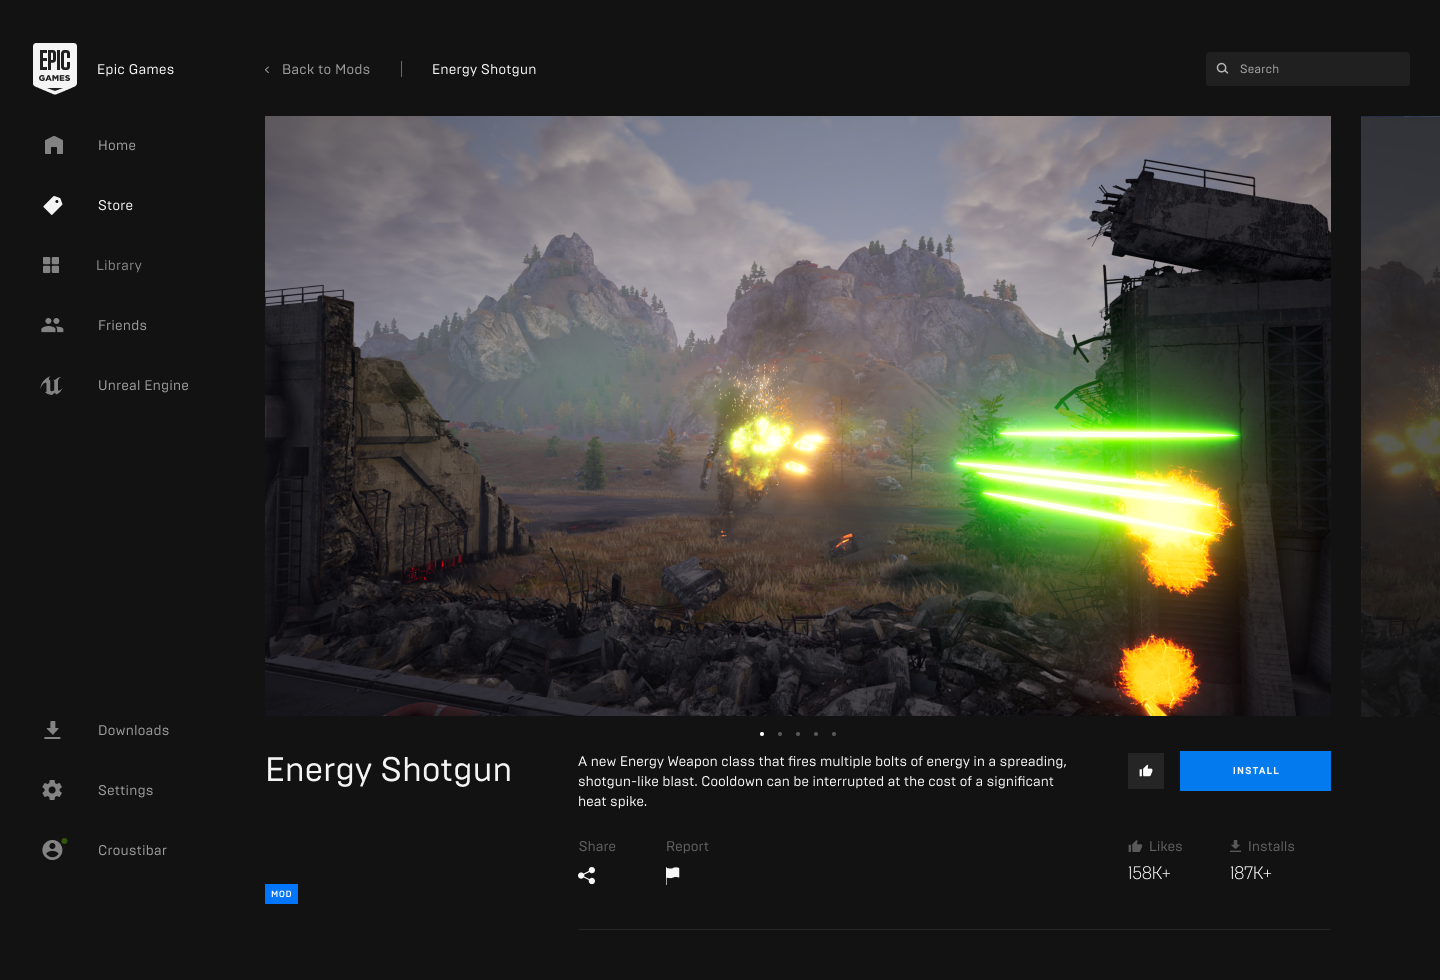 Epic Games Store adds support for community-made mods #rwanda #RwOT #yks2020